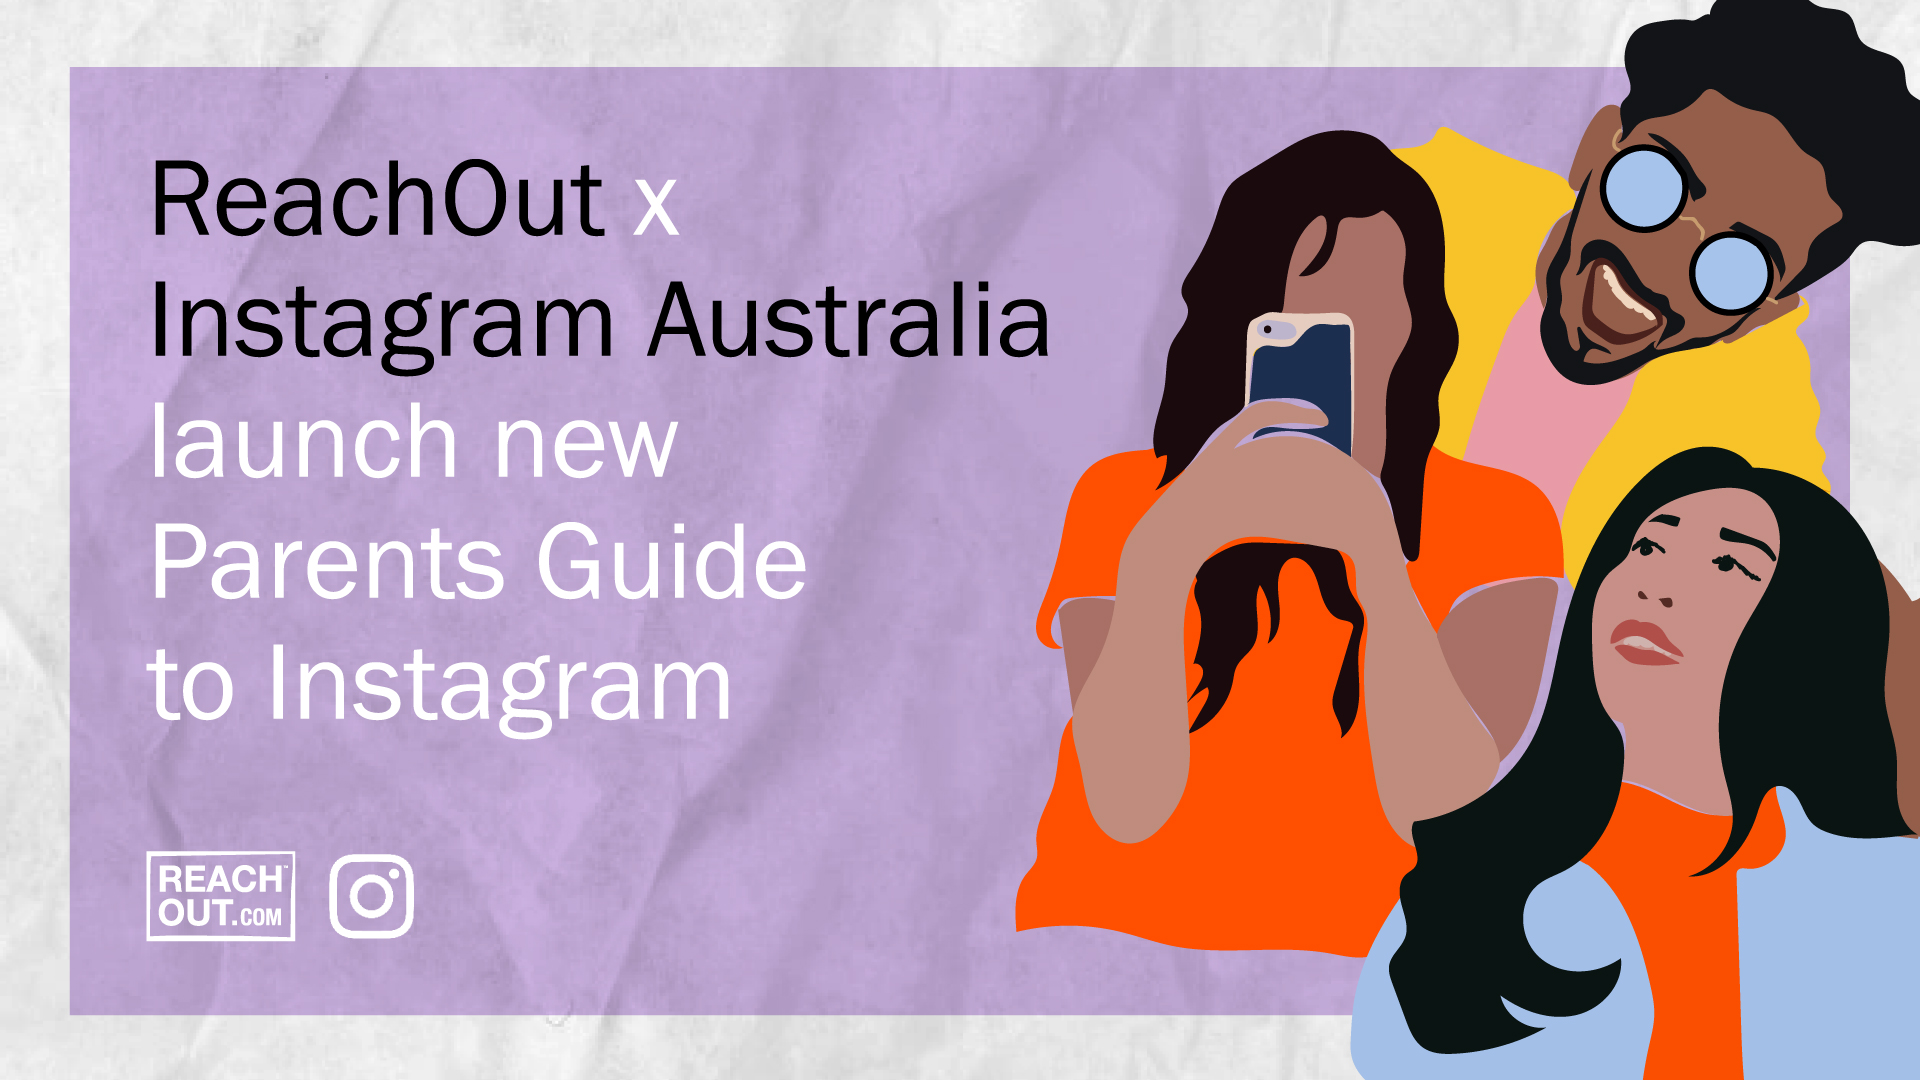 A Parents Guide to Instagram in partnership with Reach Out.